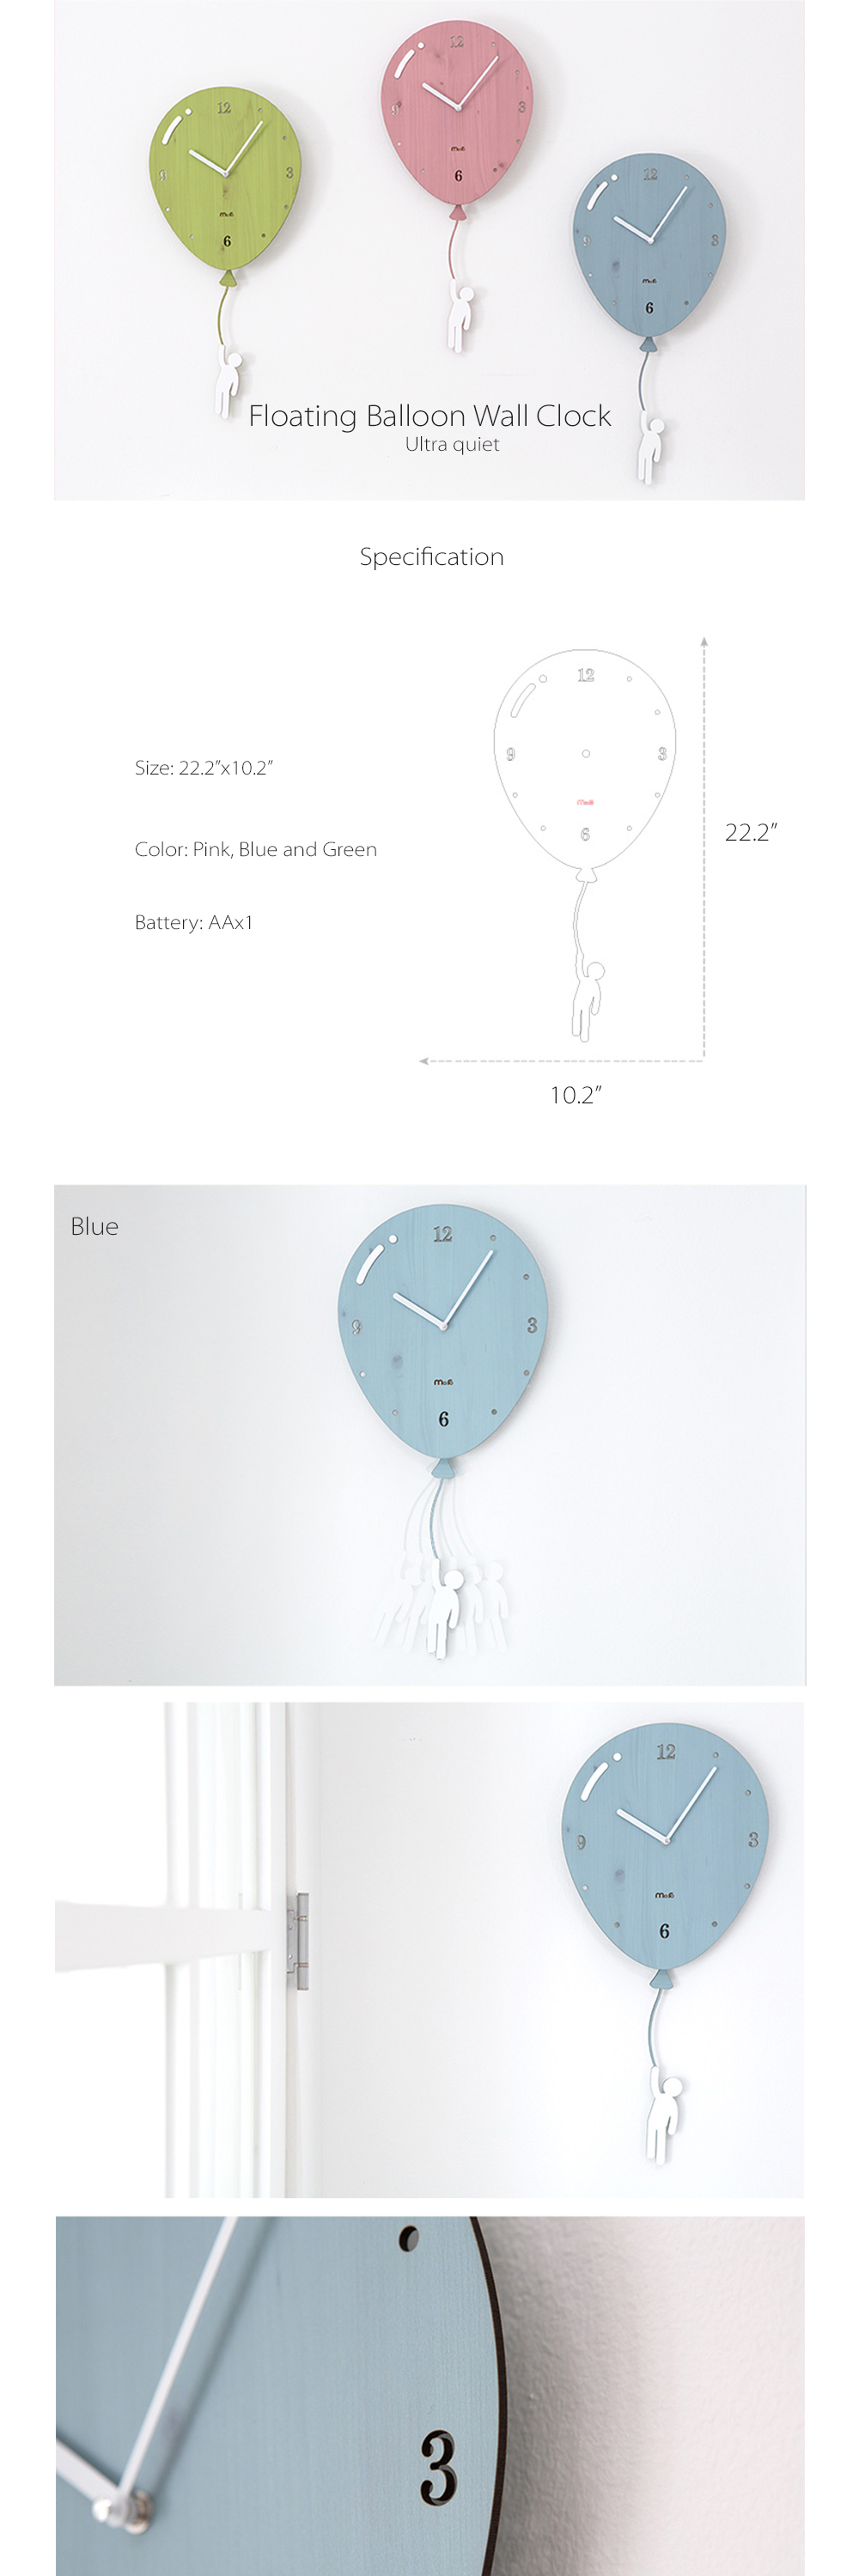 Floating Balloon Wall Clock Wall Clock From Icelandic Driftwood